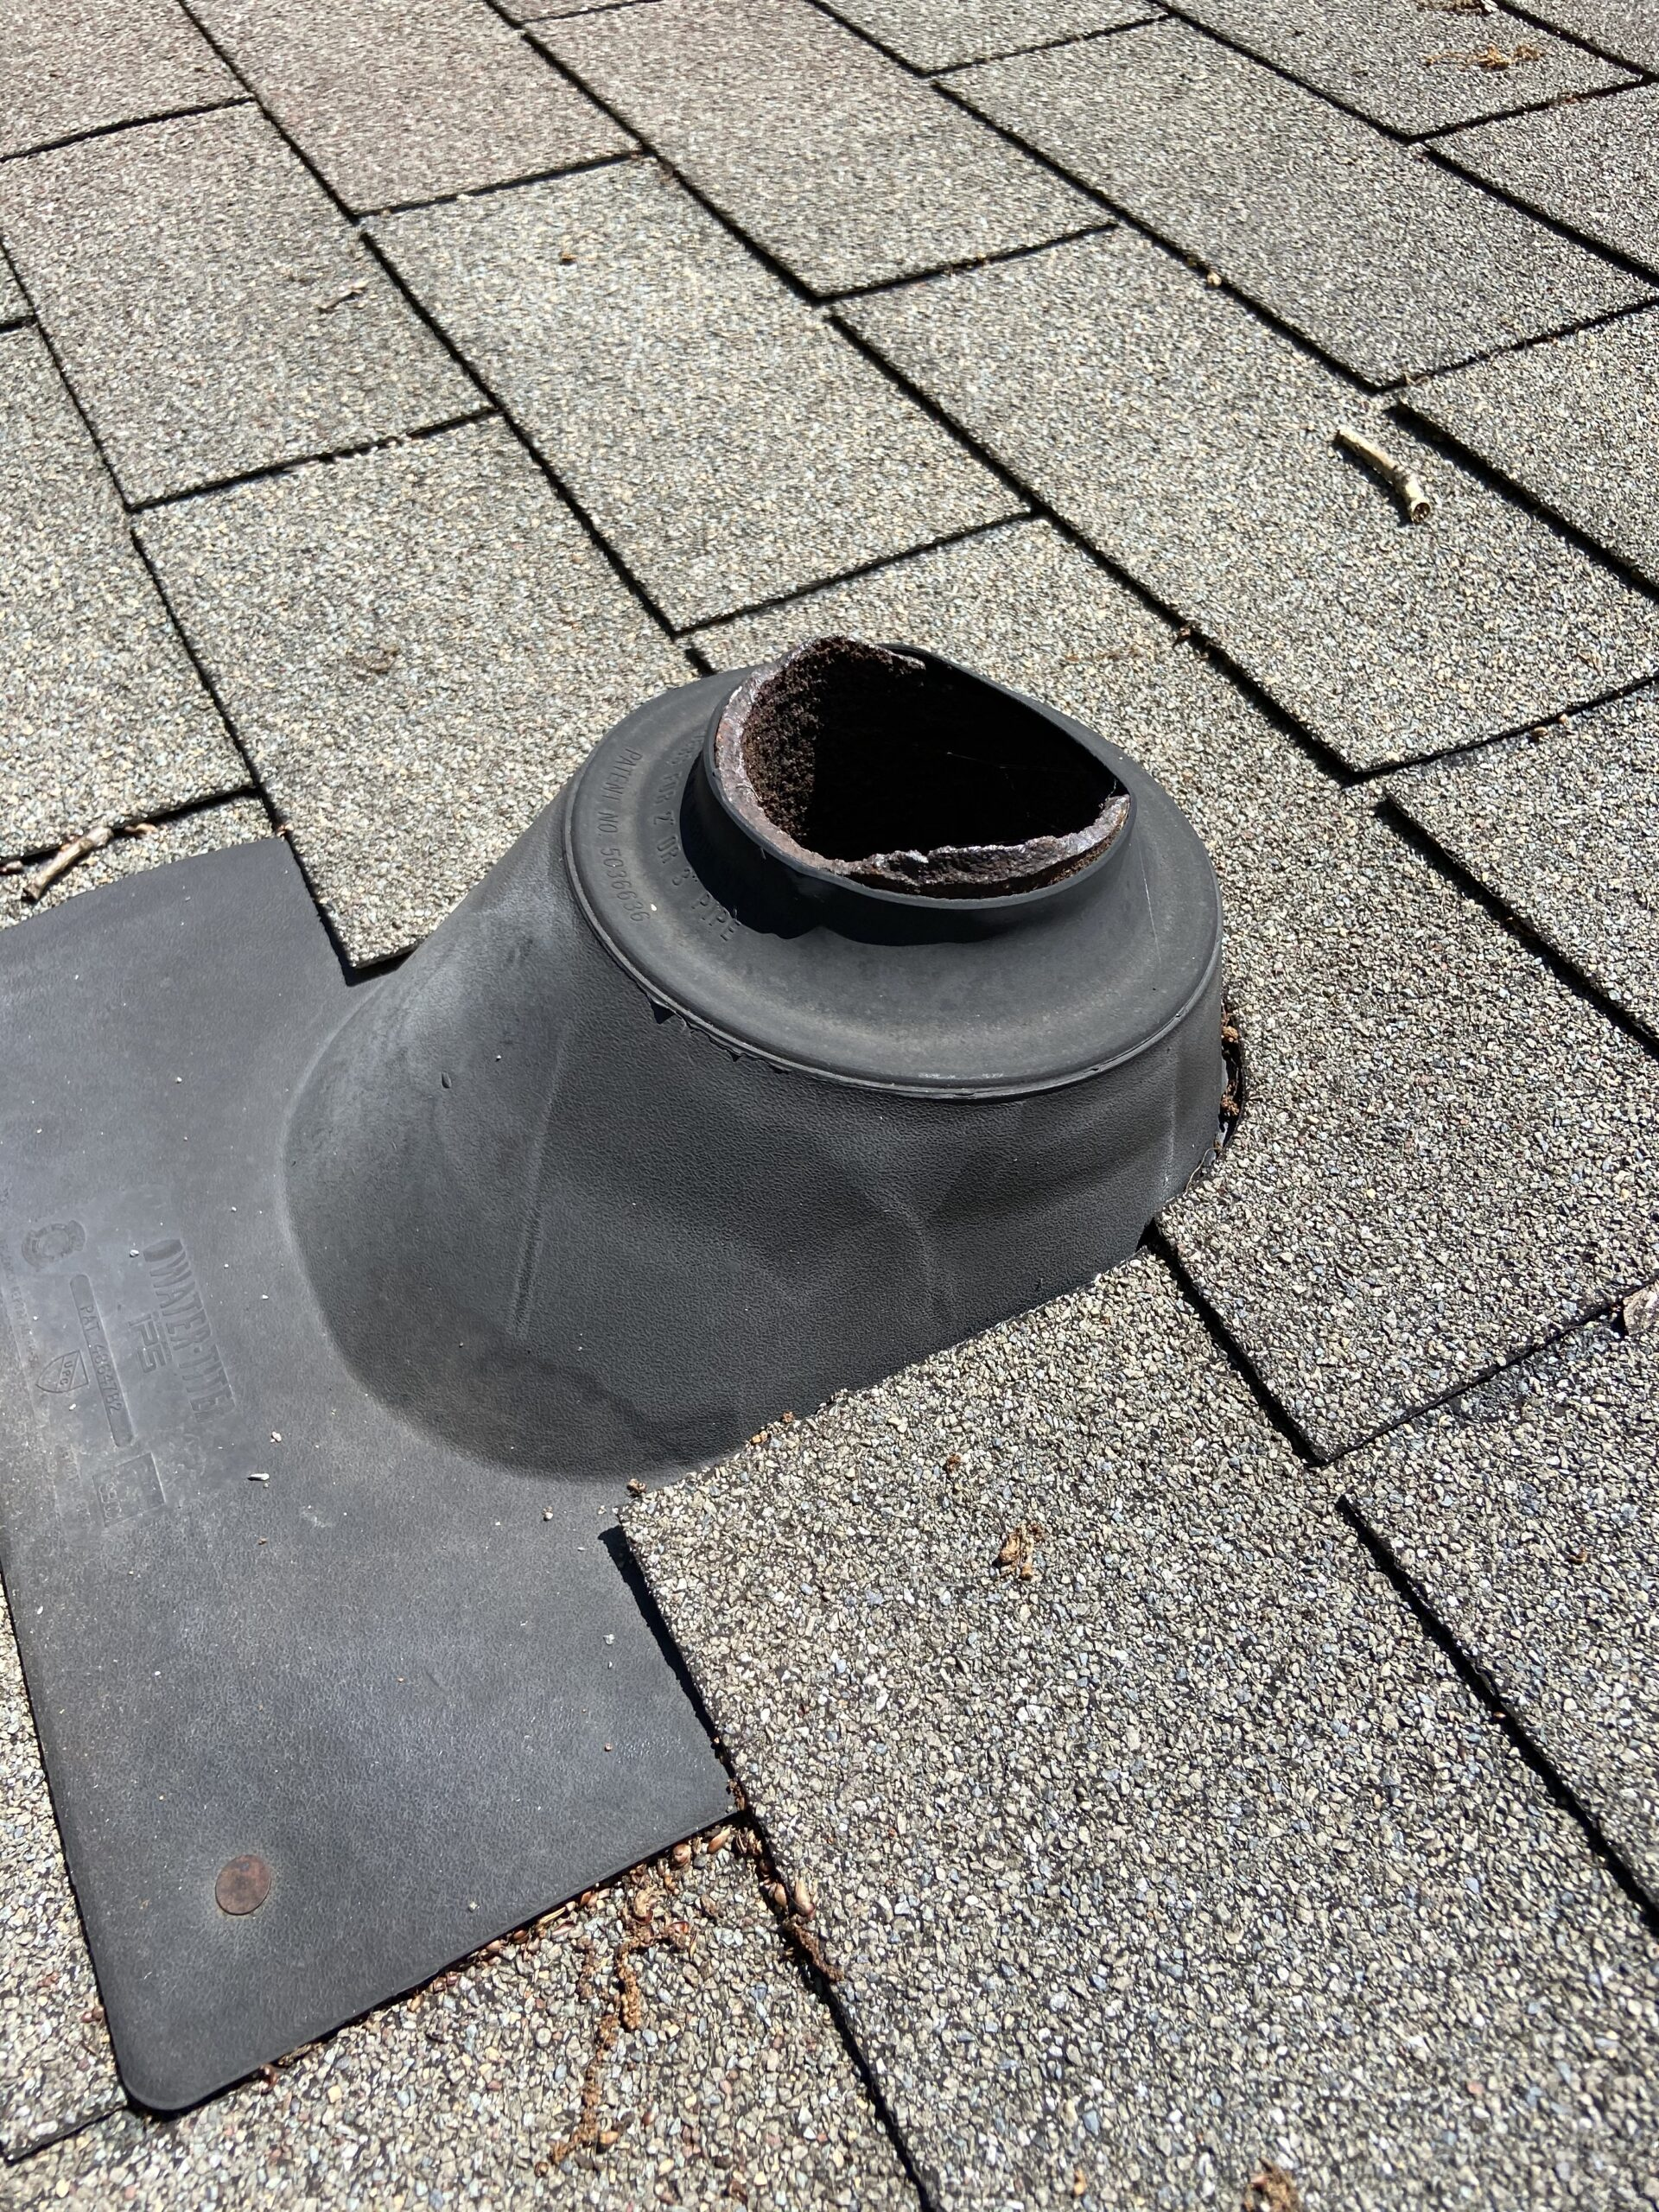 Here's a picture of this old pipe boot that is right at the top of the old exhaust pipe